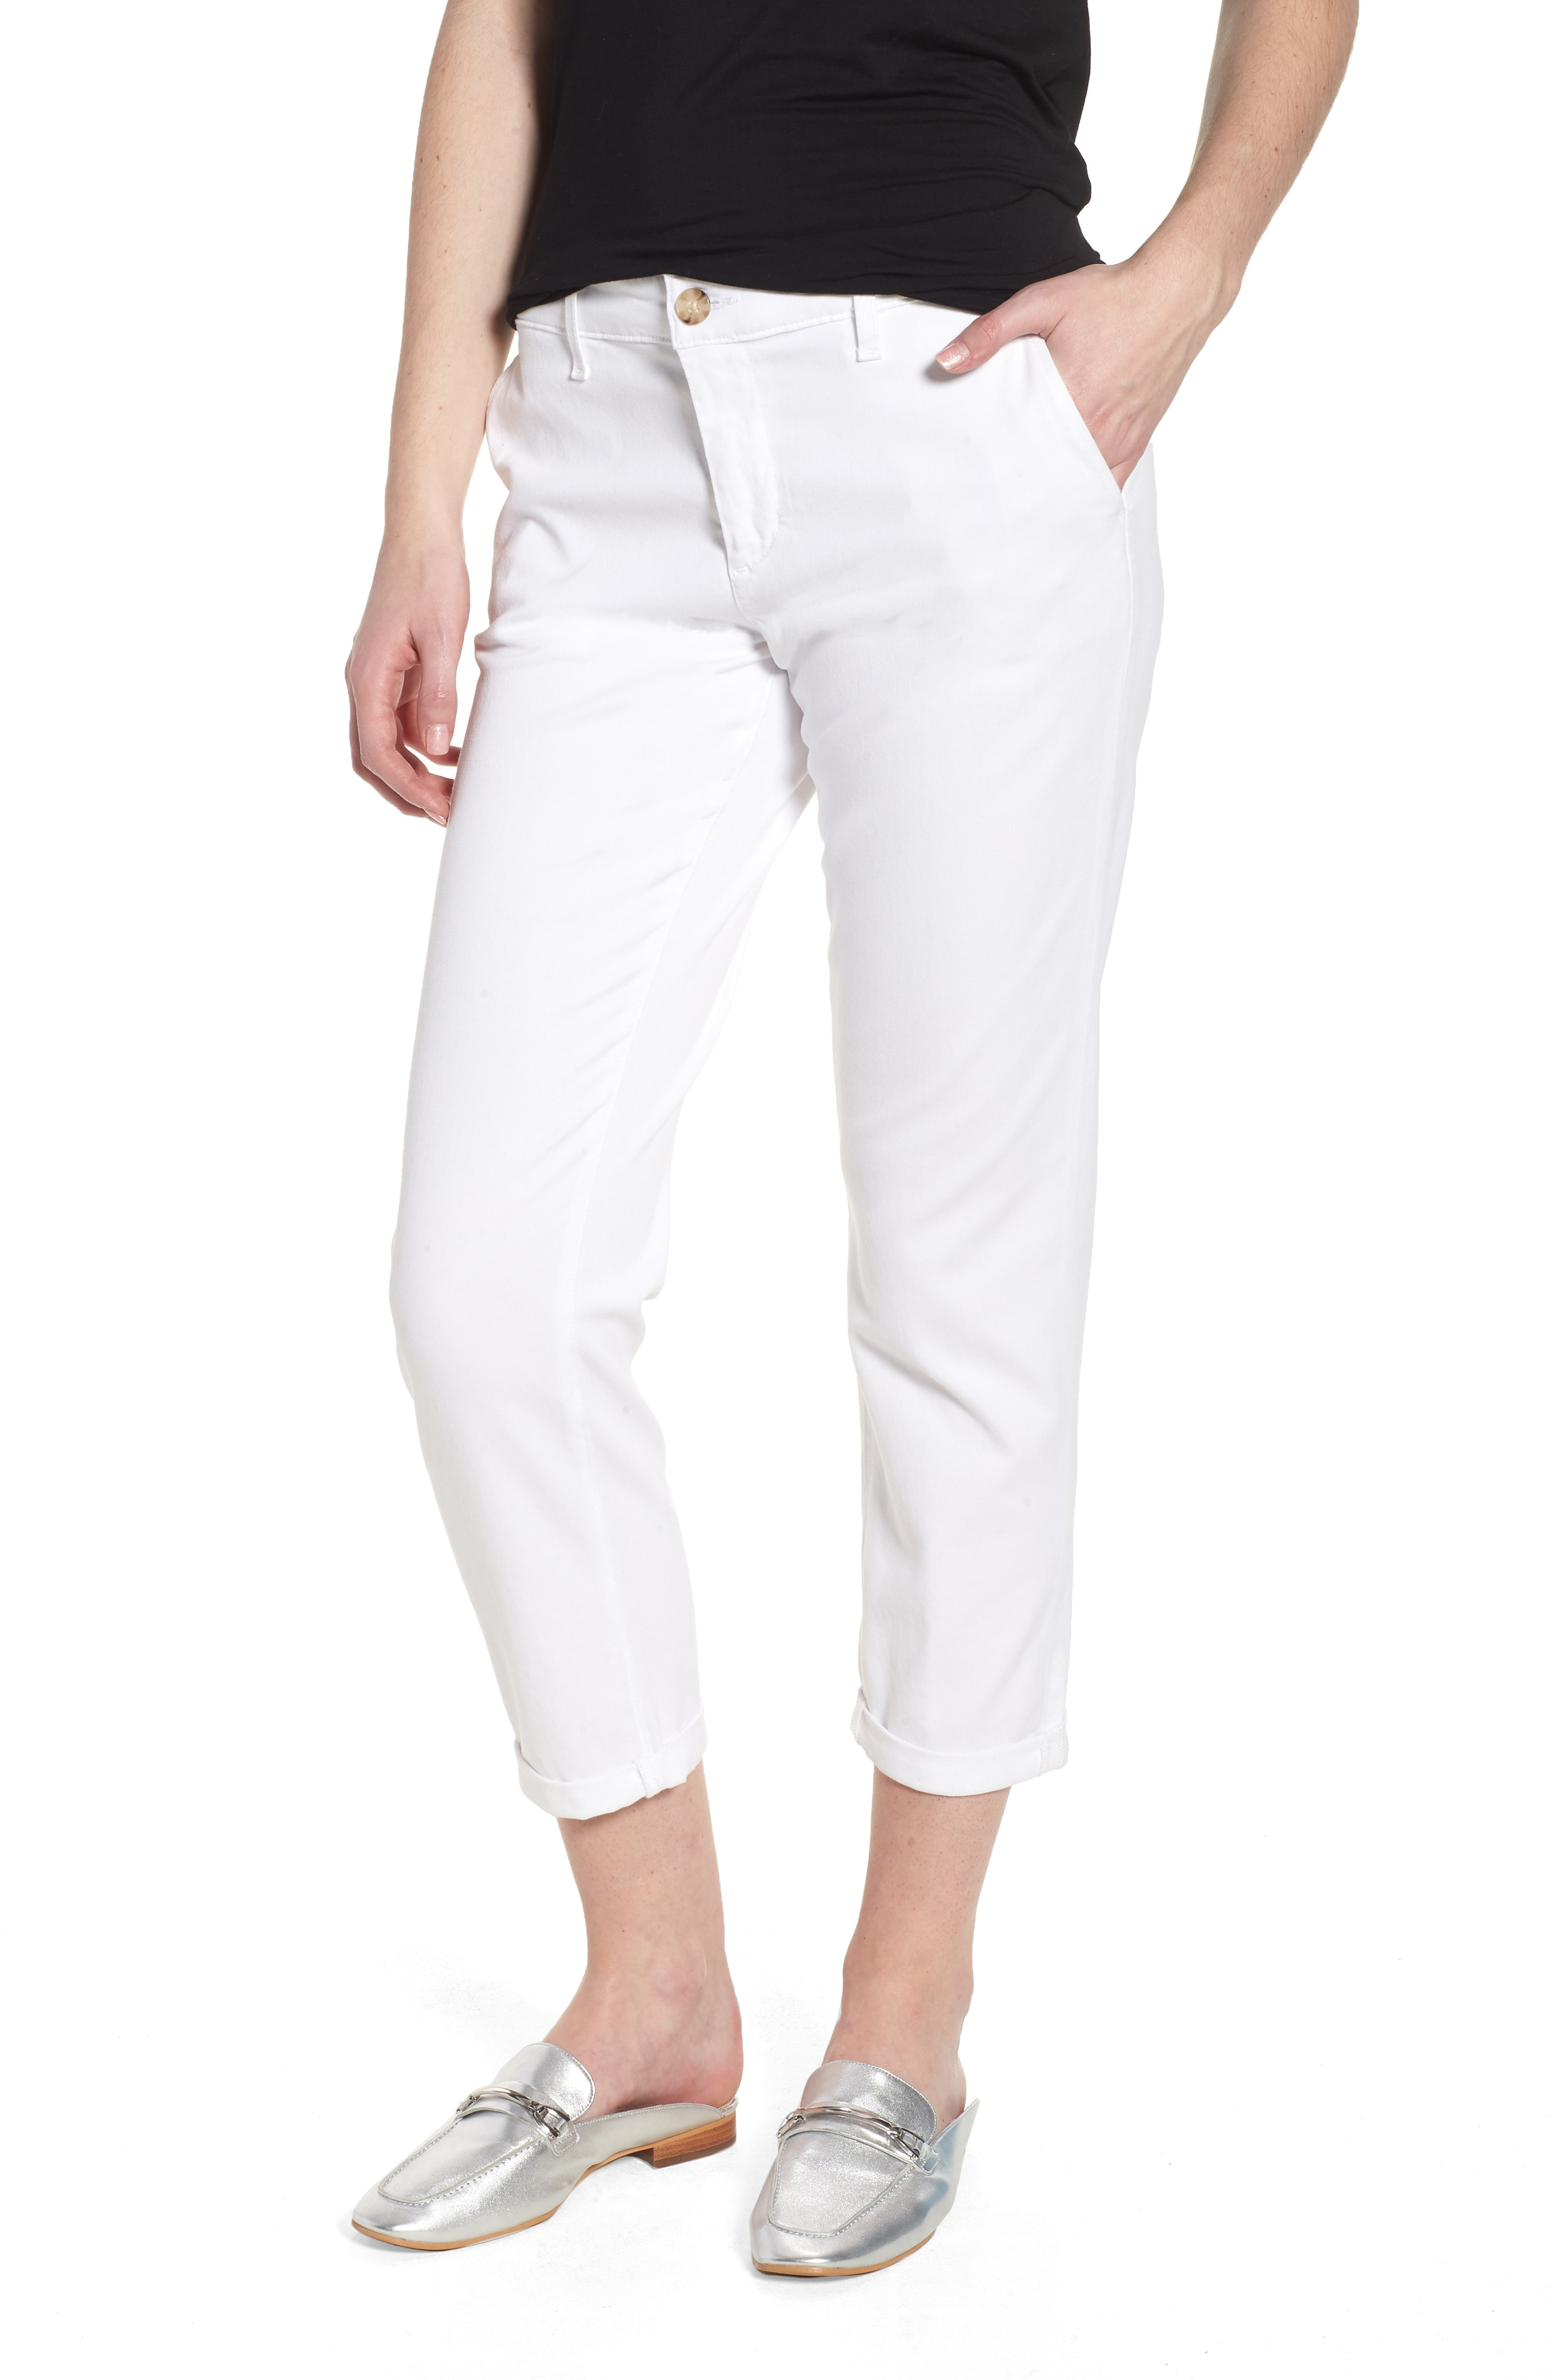 Styles to make by wearing   white trousers